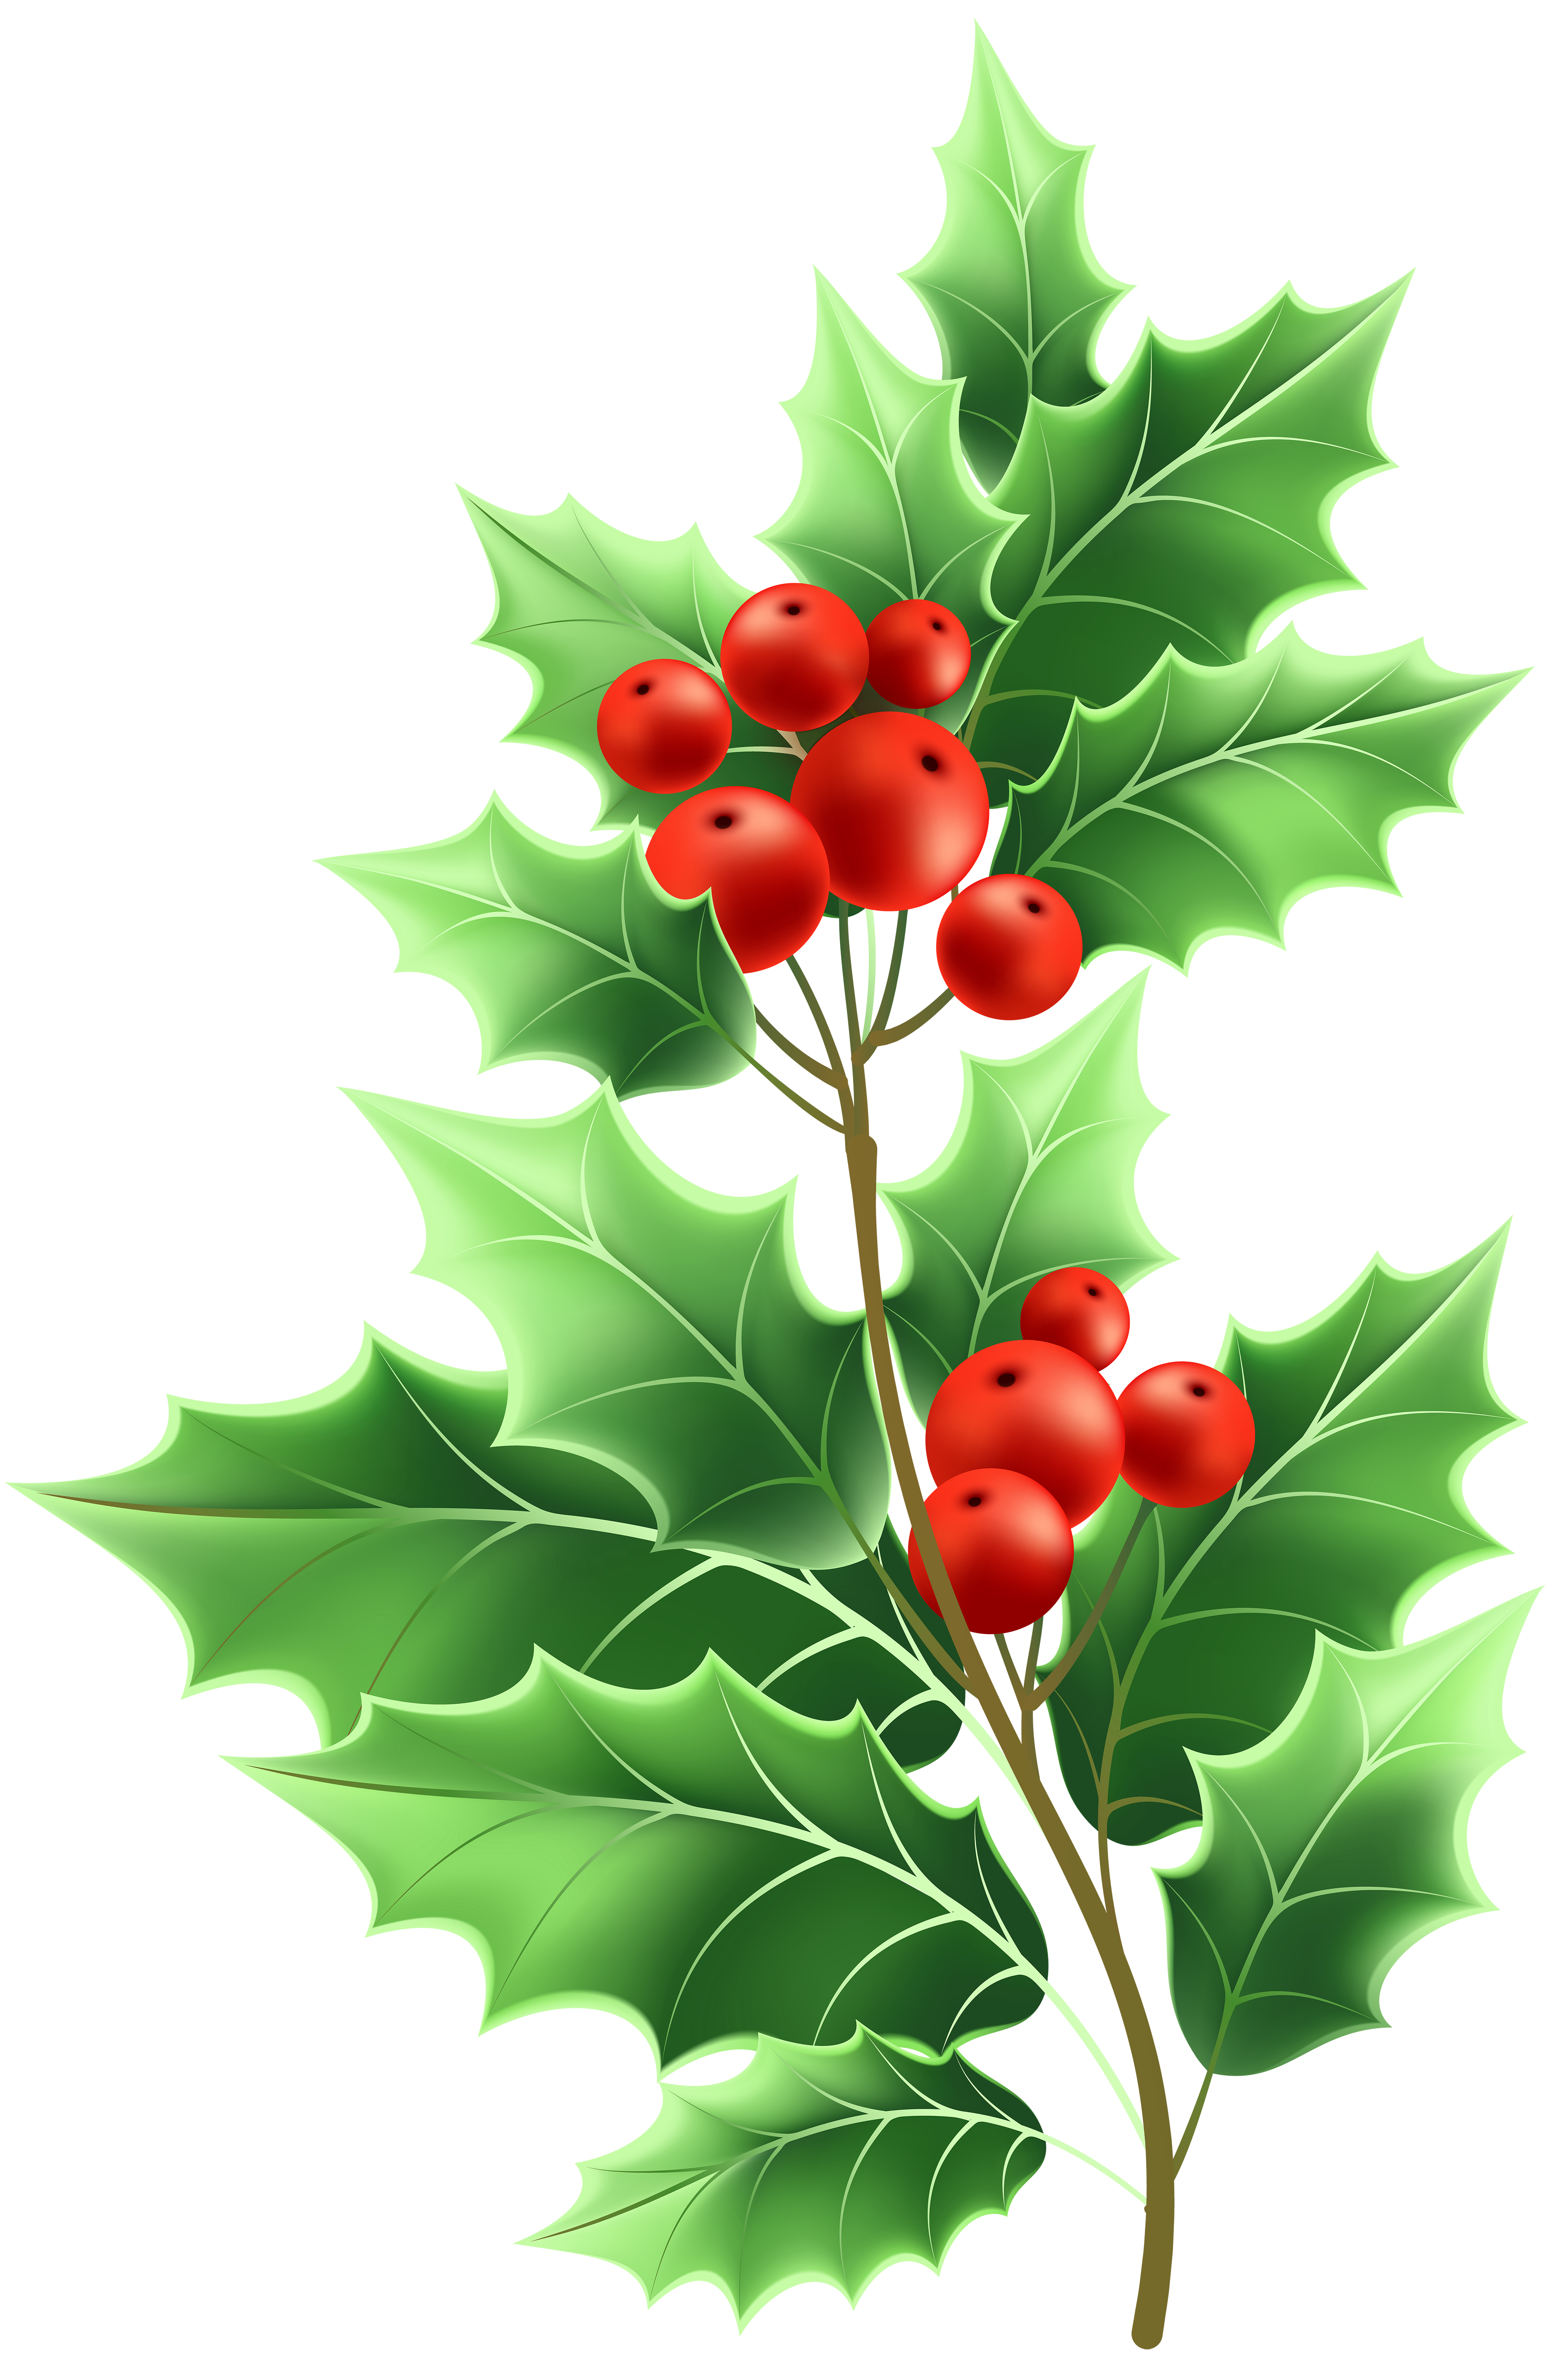 Holly clipart file. Image formats lossless compression